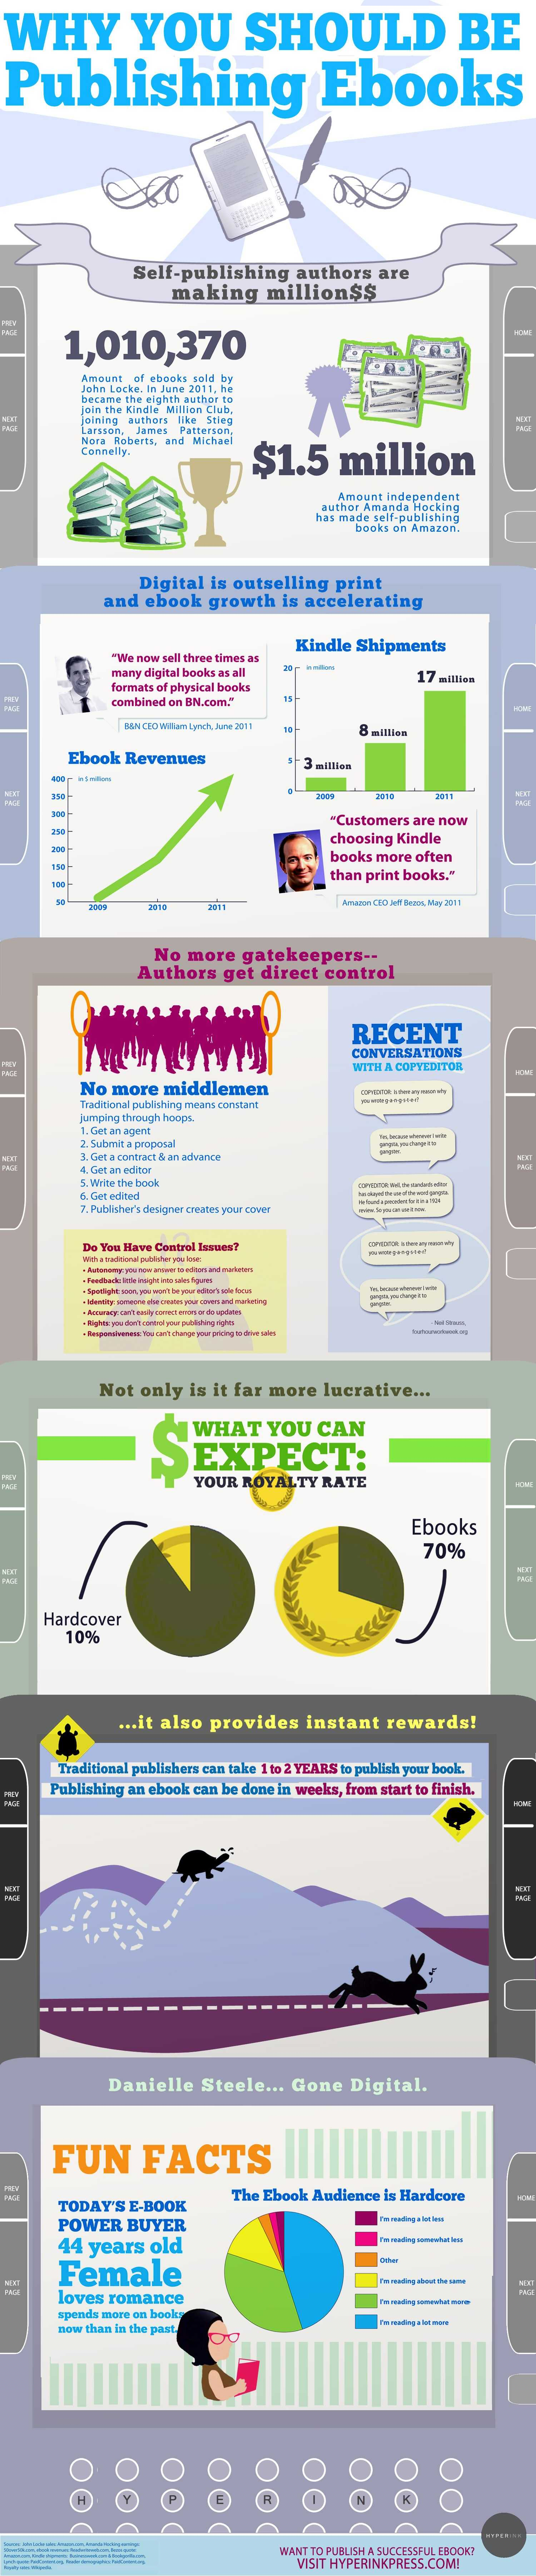 Why You Should Publish An Ebook Infographic